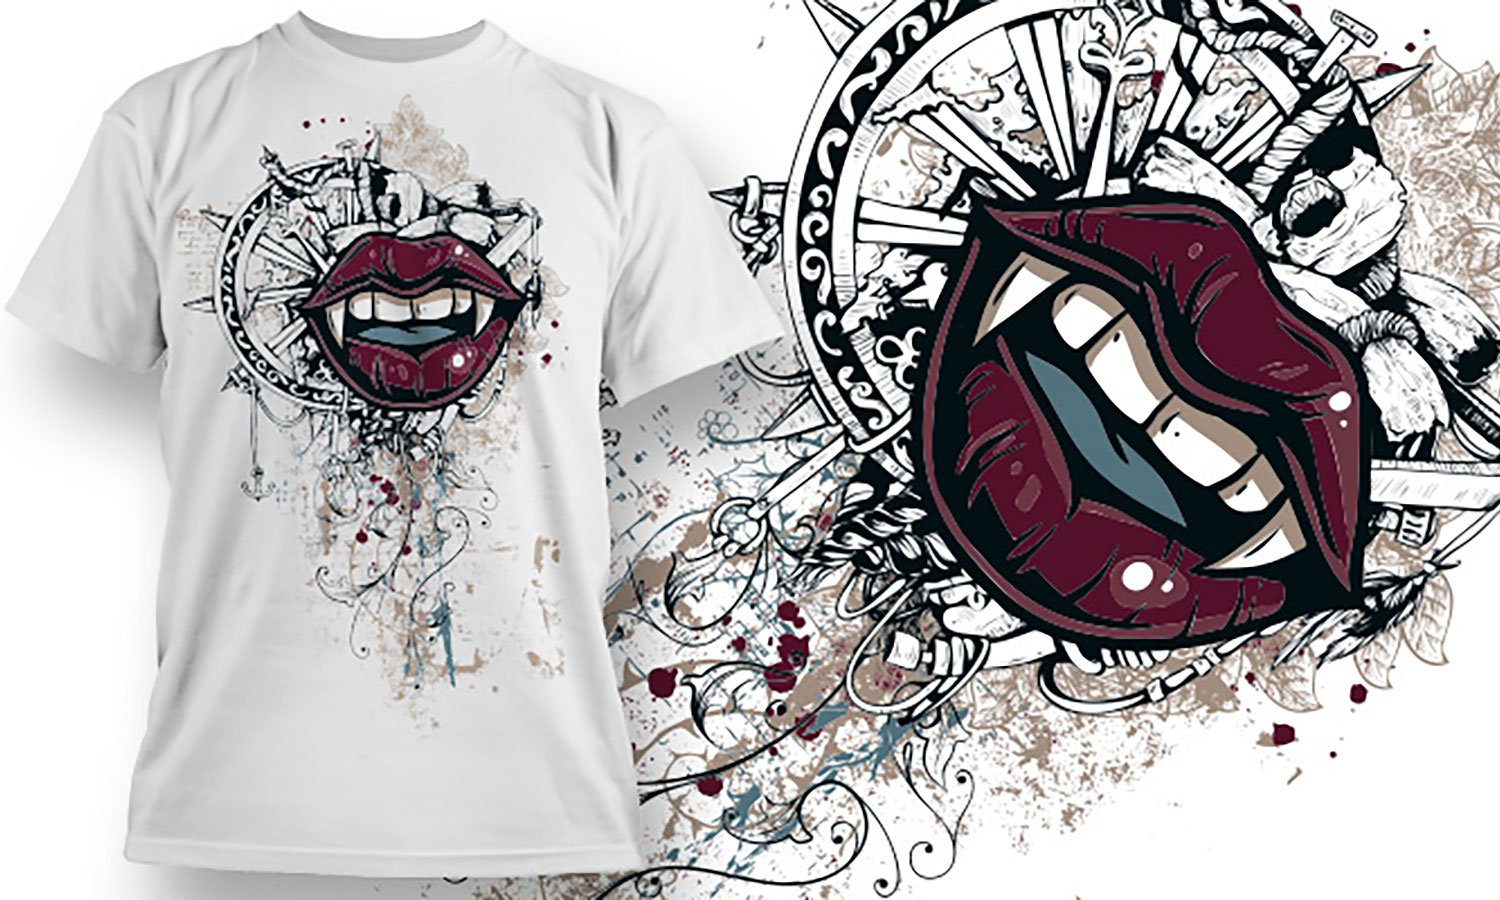 Lips - Printed T-Shirt for Men, Women and Kids - TS040